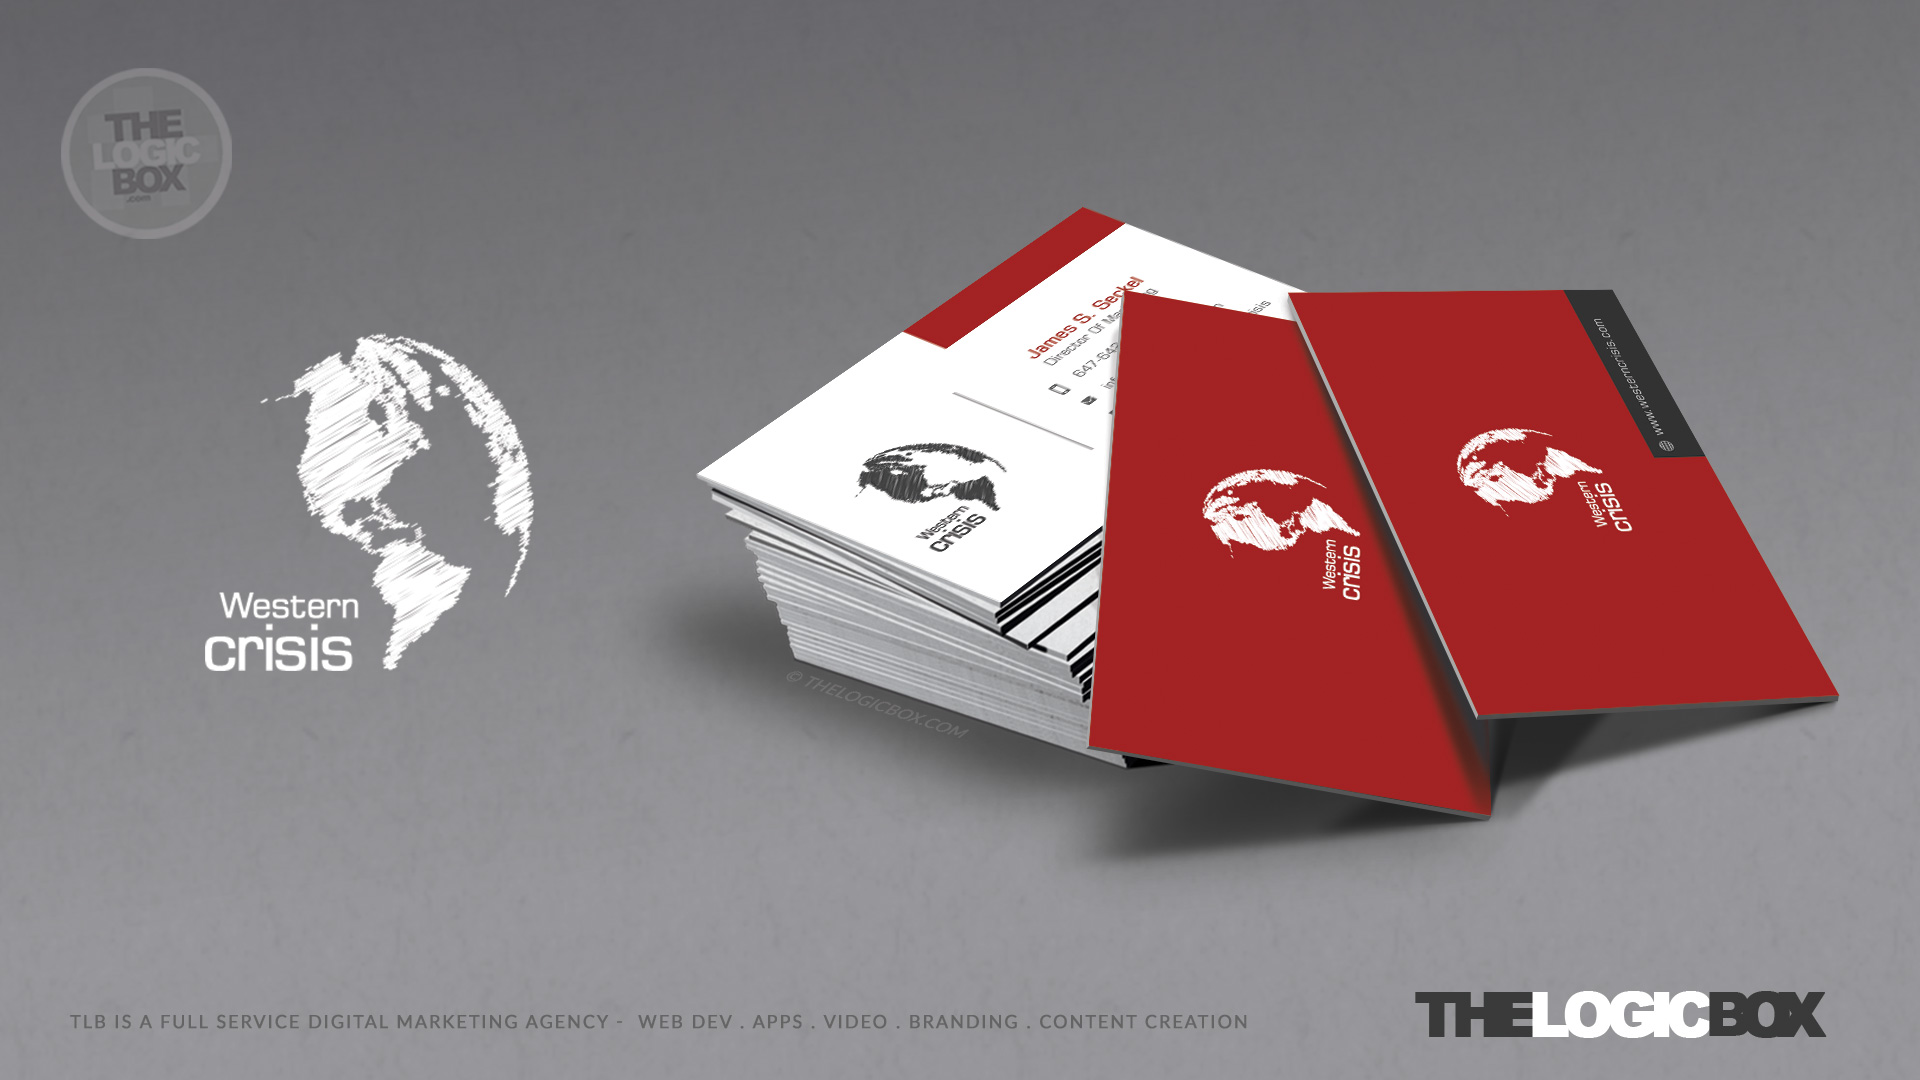 Business-Card-the-logic-box-agency-7-westerncrisis